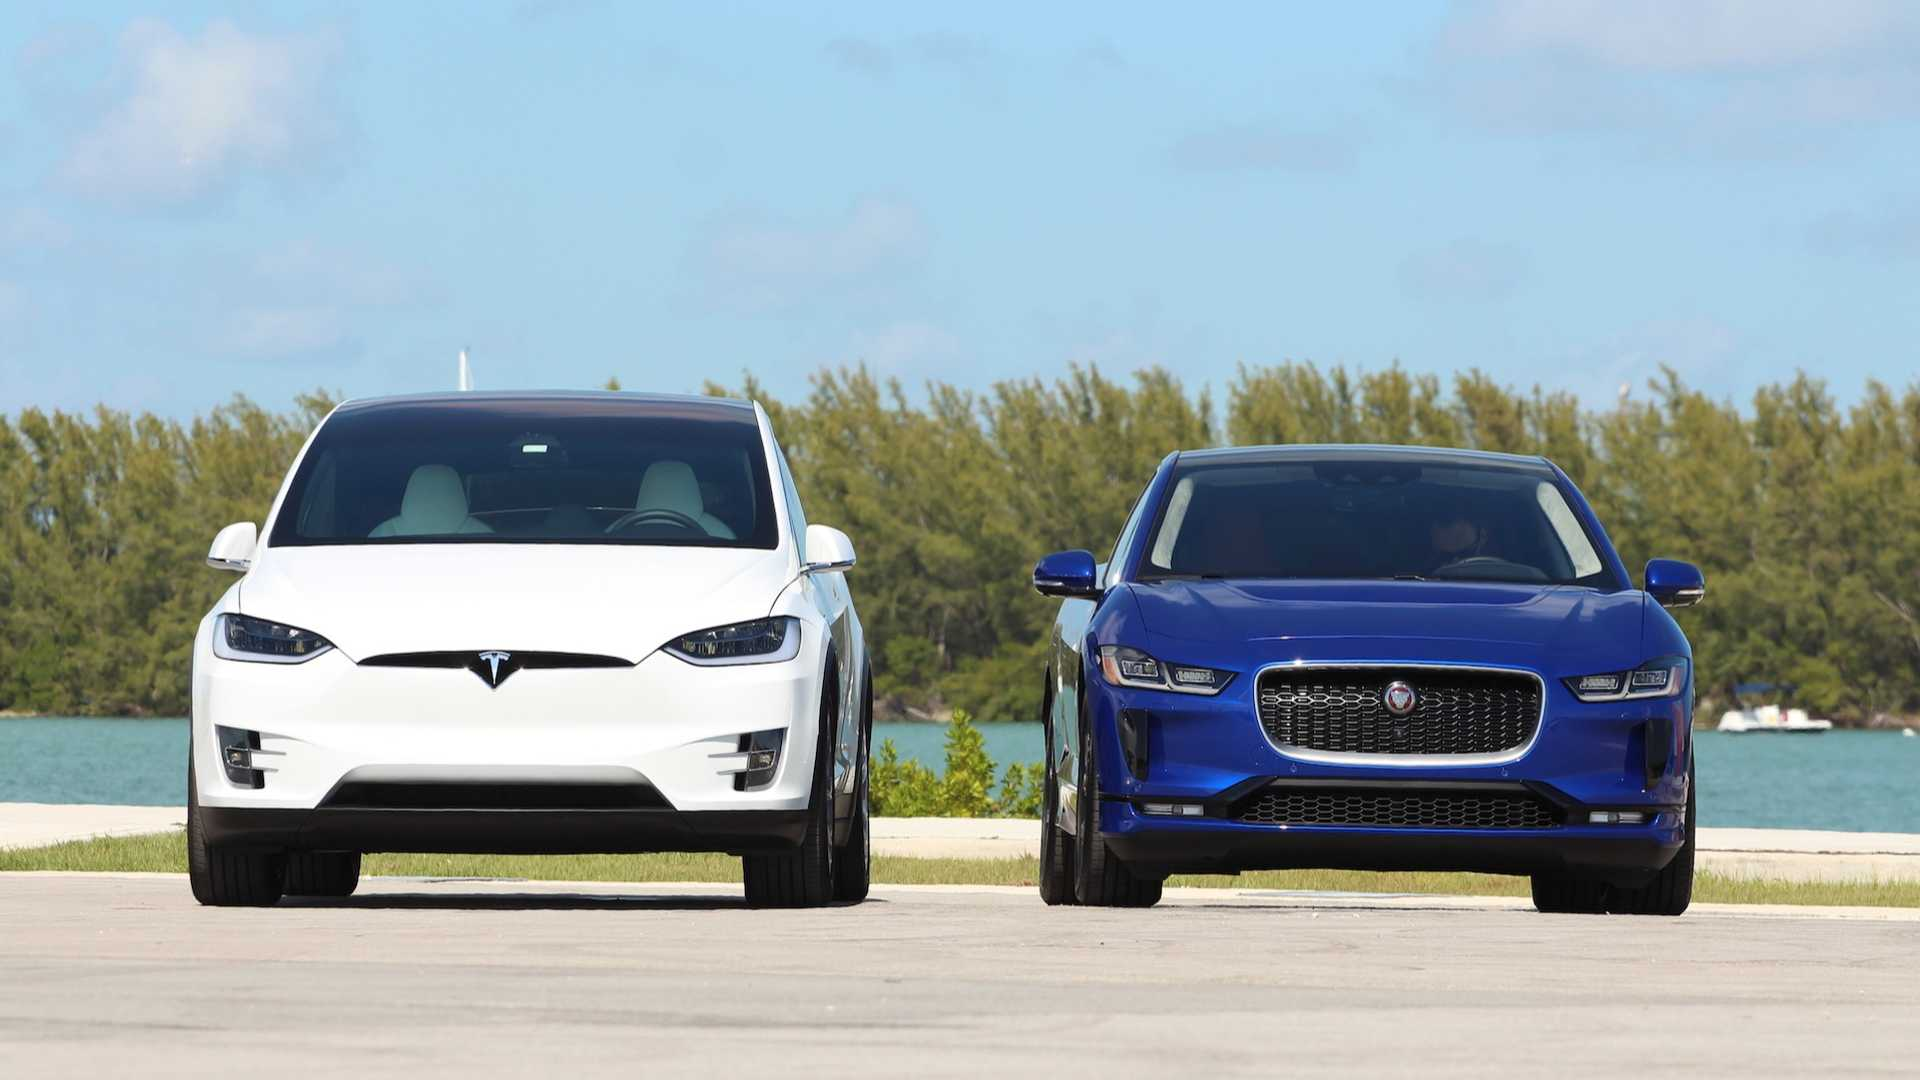 2019 Jaguar I-Pace Vs  2018 Tesla Model X Comparison: Cat Nipped